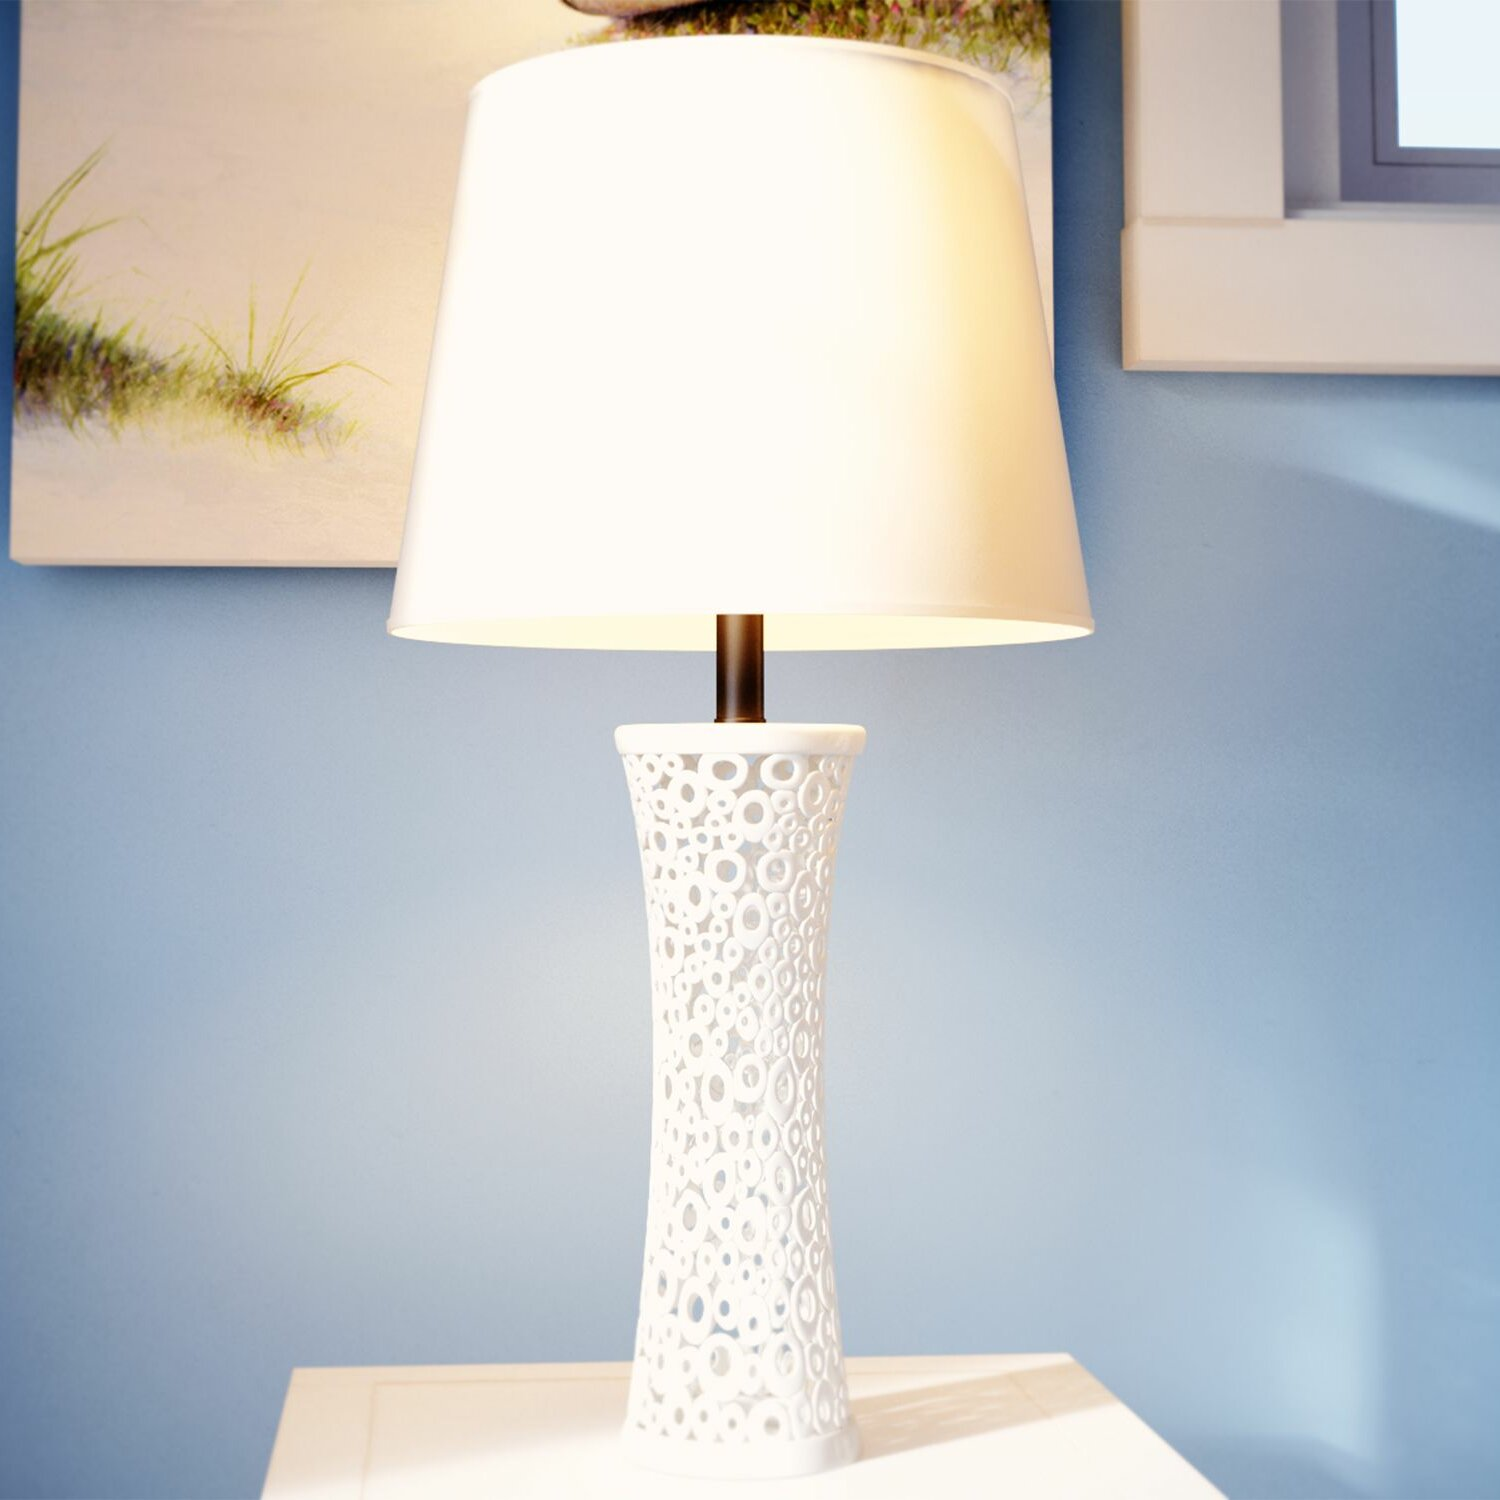 beachcrest home plymouth 26 table lamp reviews wayfair. Black Bedroom Furniture Sets. Home Design Ideas